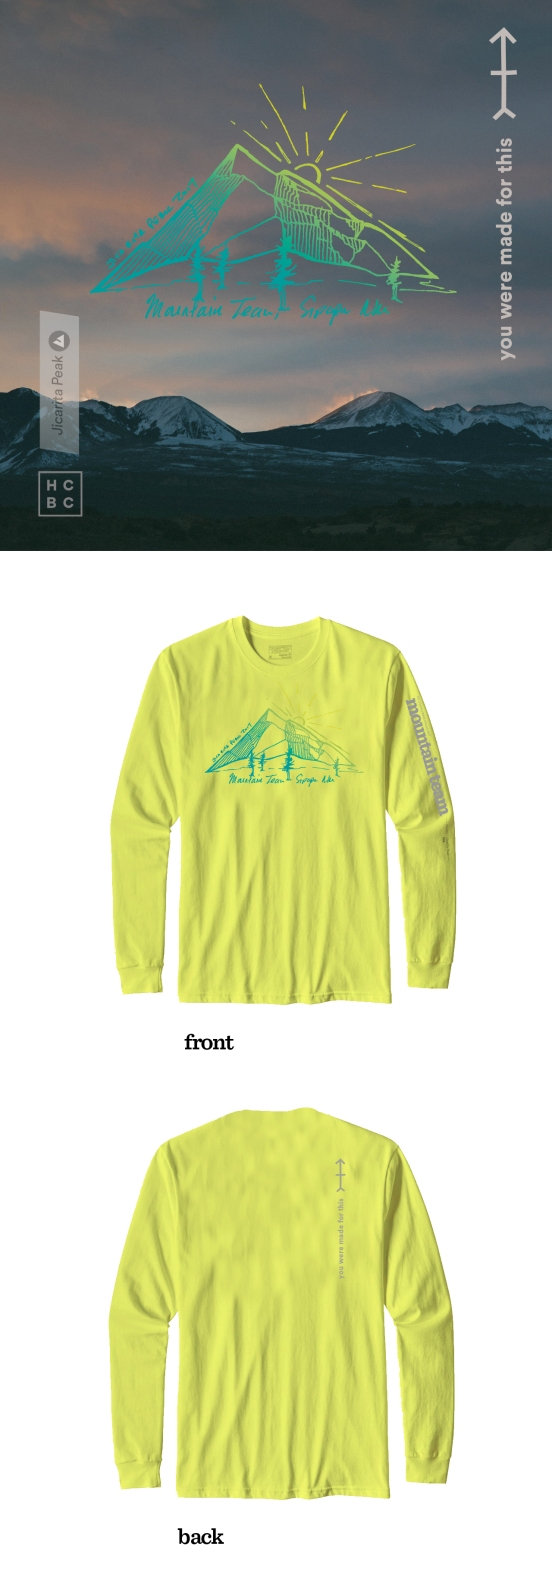 mountainmen-tee-bright-Proof